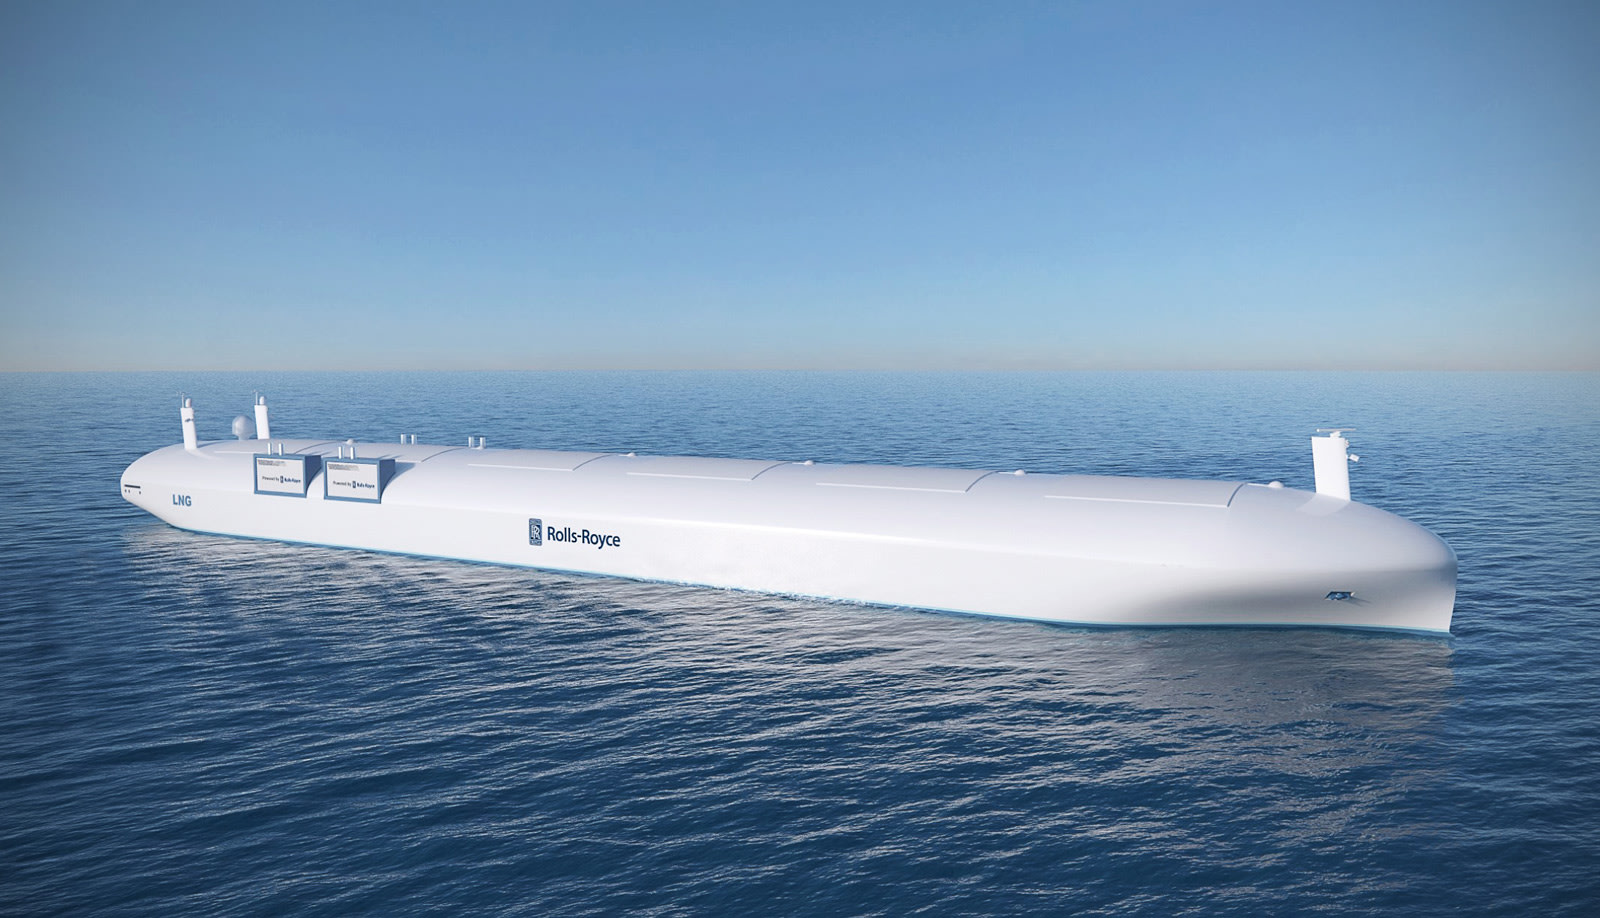 Rolls-Royce expects remote-controlled cargo ships by 2020